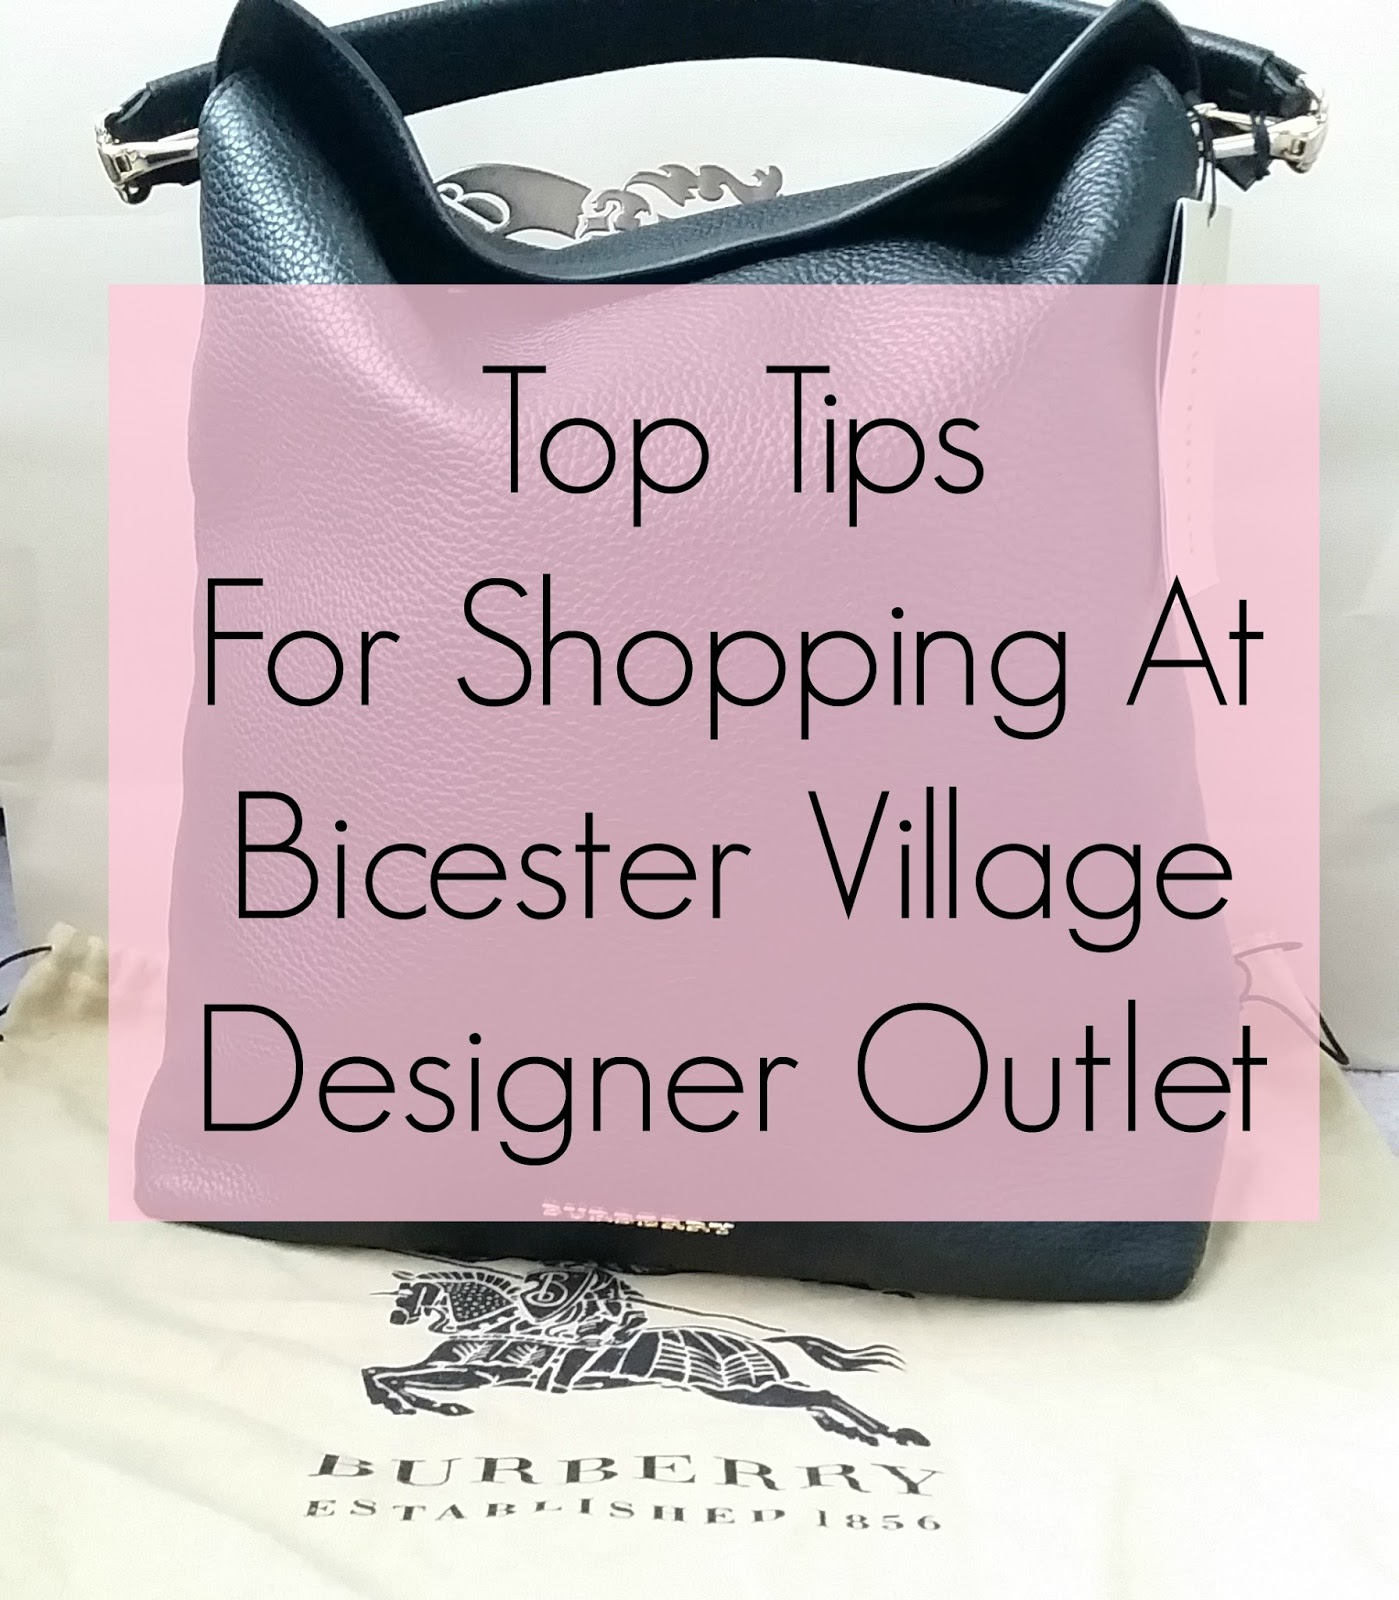 Bicester Village Designer Outlet - my top tips for a successful shop ... 7d7399b5bc1d7